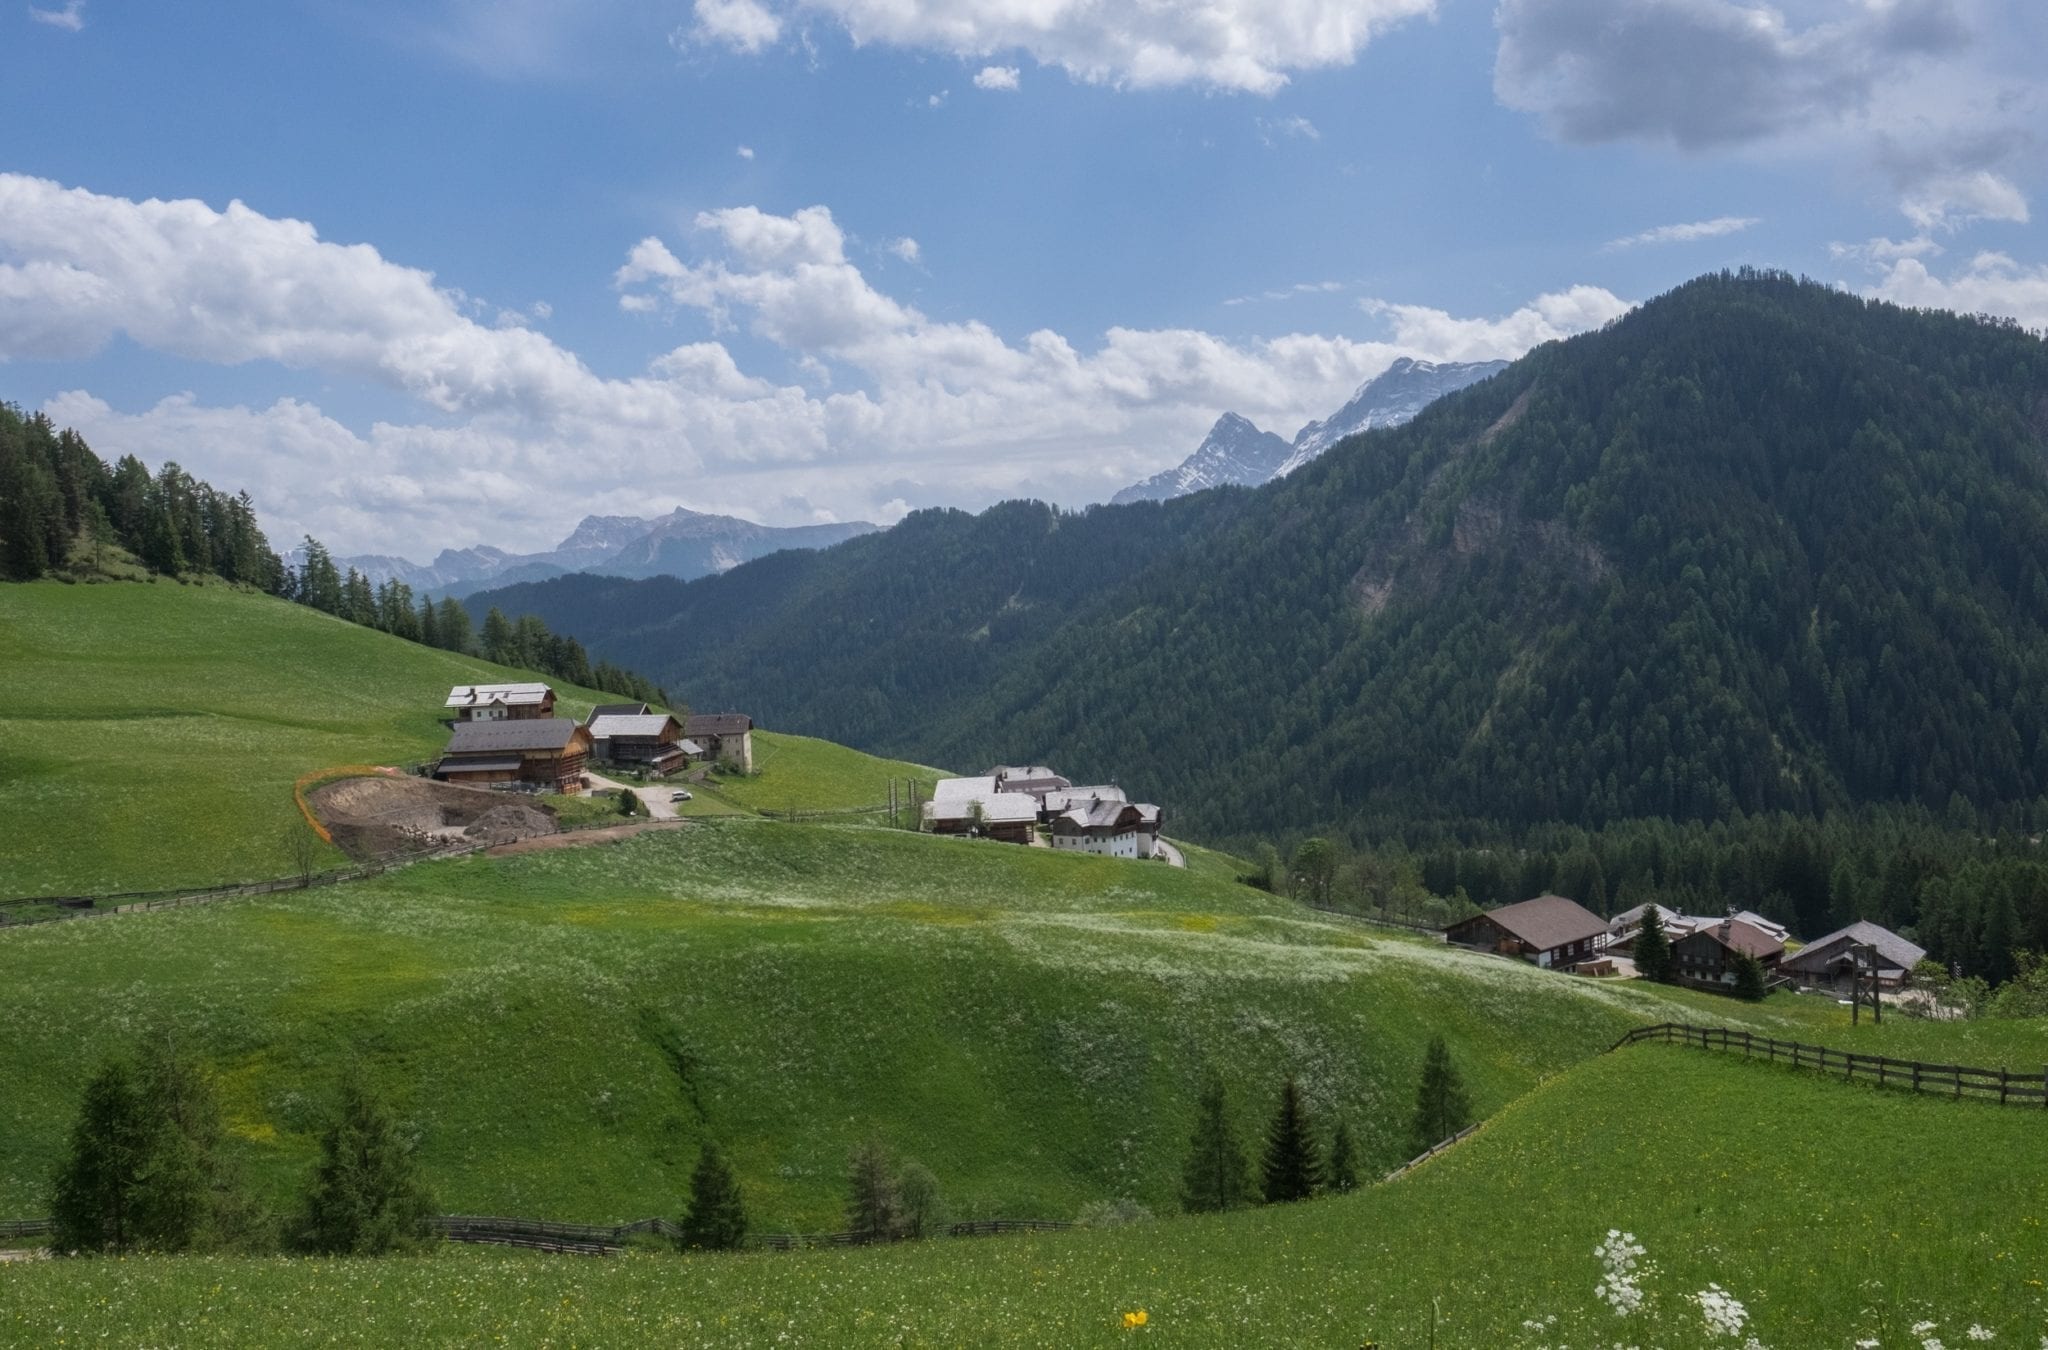 A view of the Dolomites with mountains in the distance and tiny Alpine huts on green hills in the foreground.